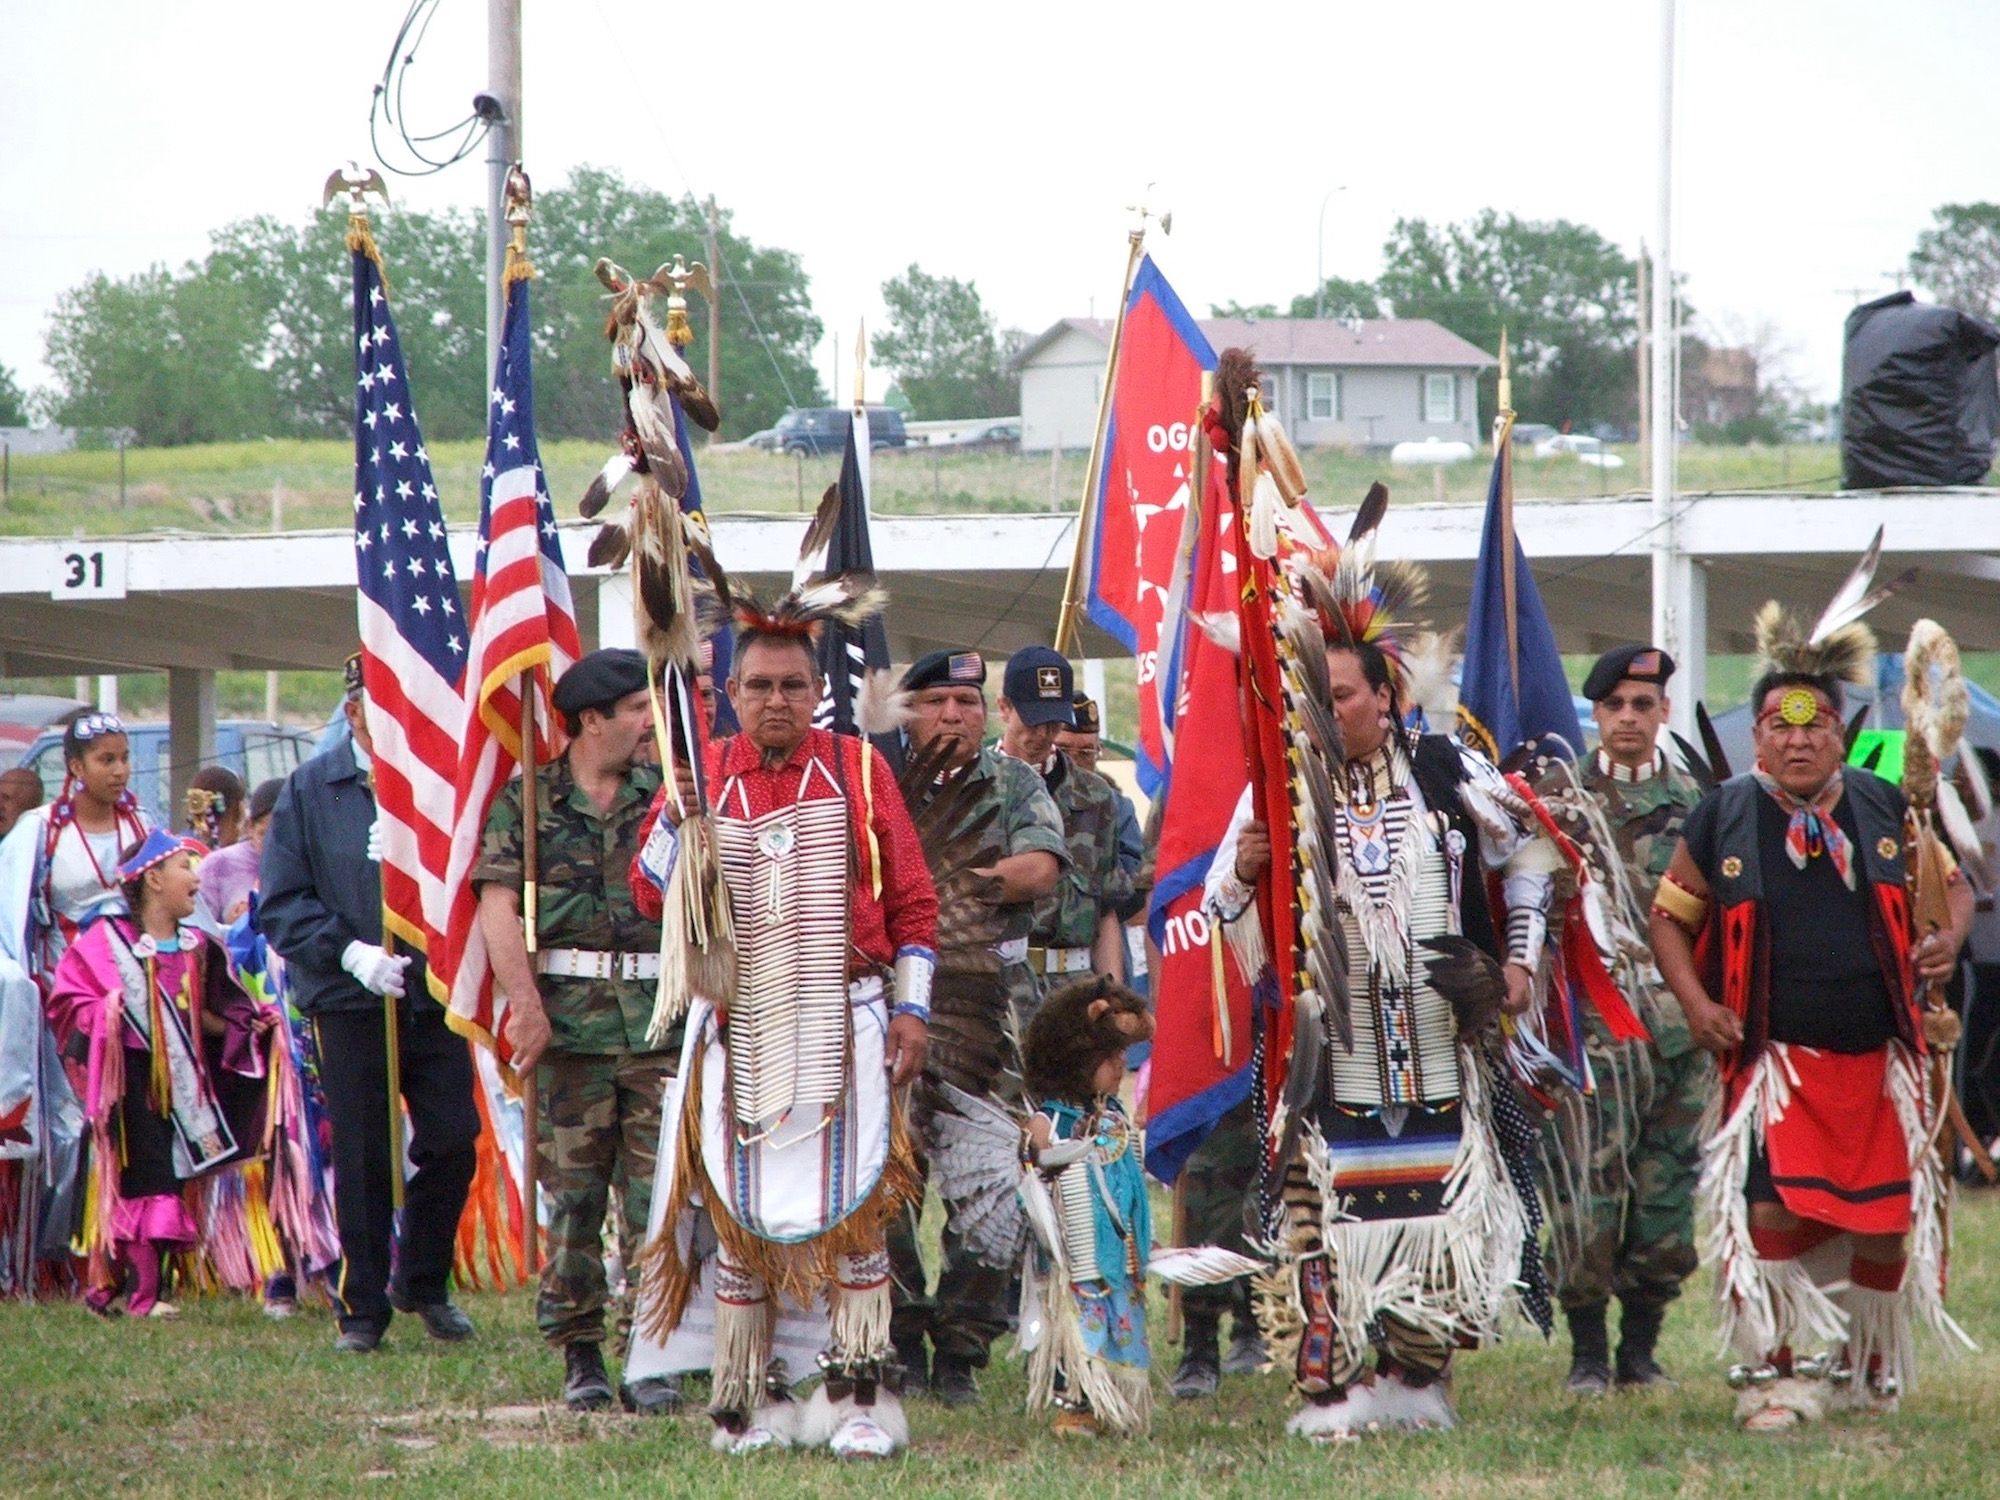 Denver American Horse: Veterans column in the Lakota language